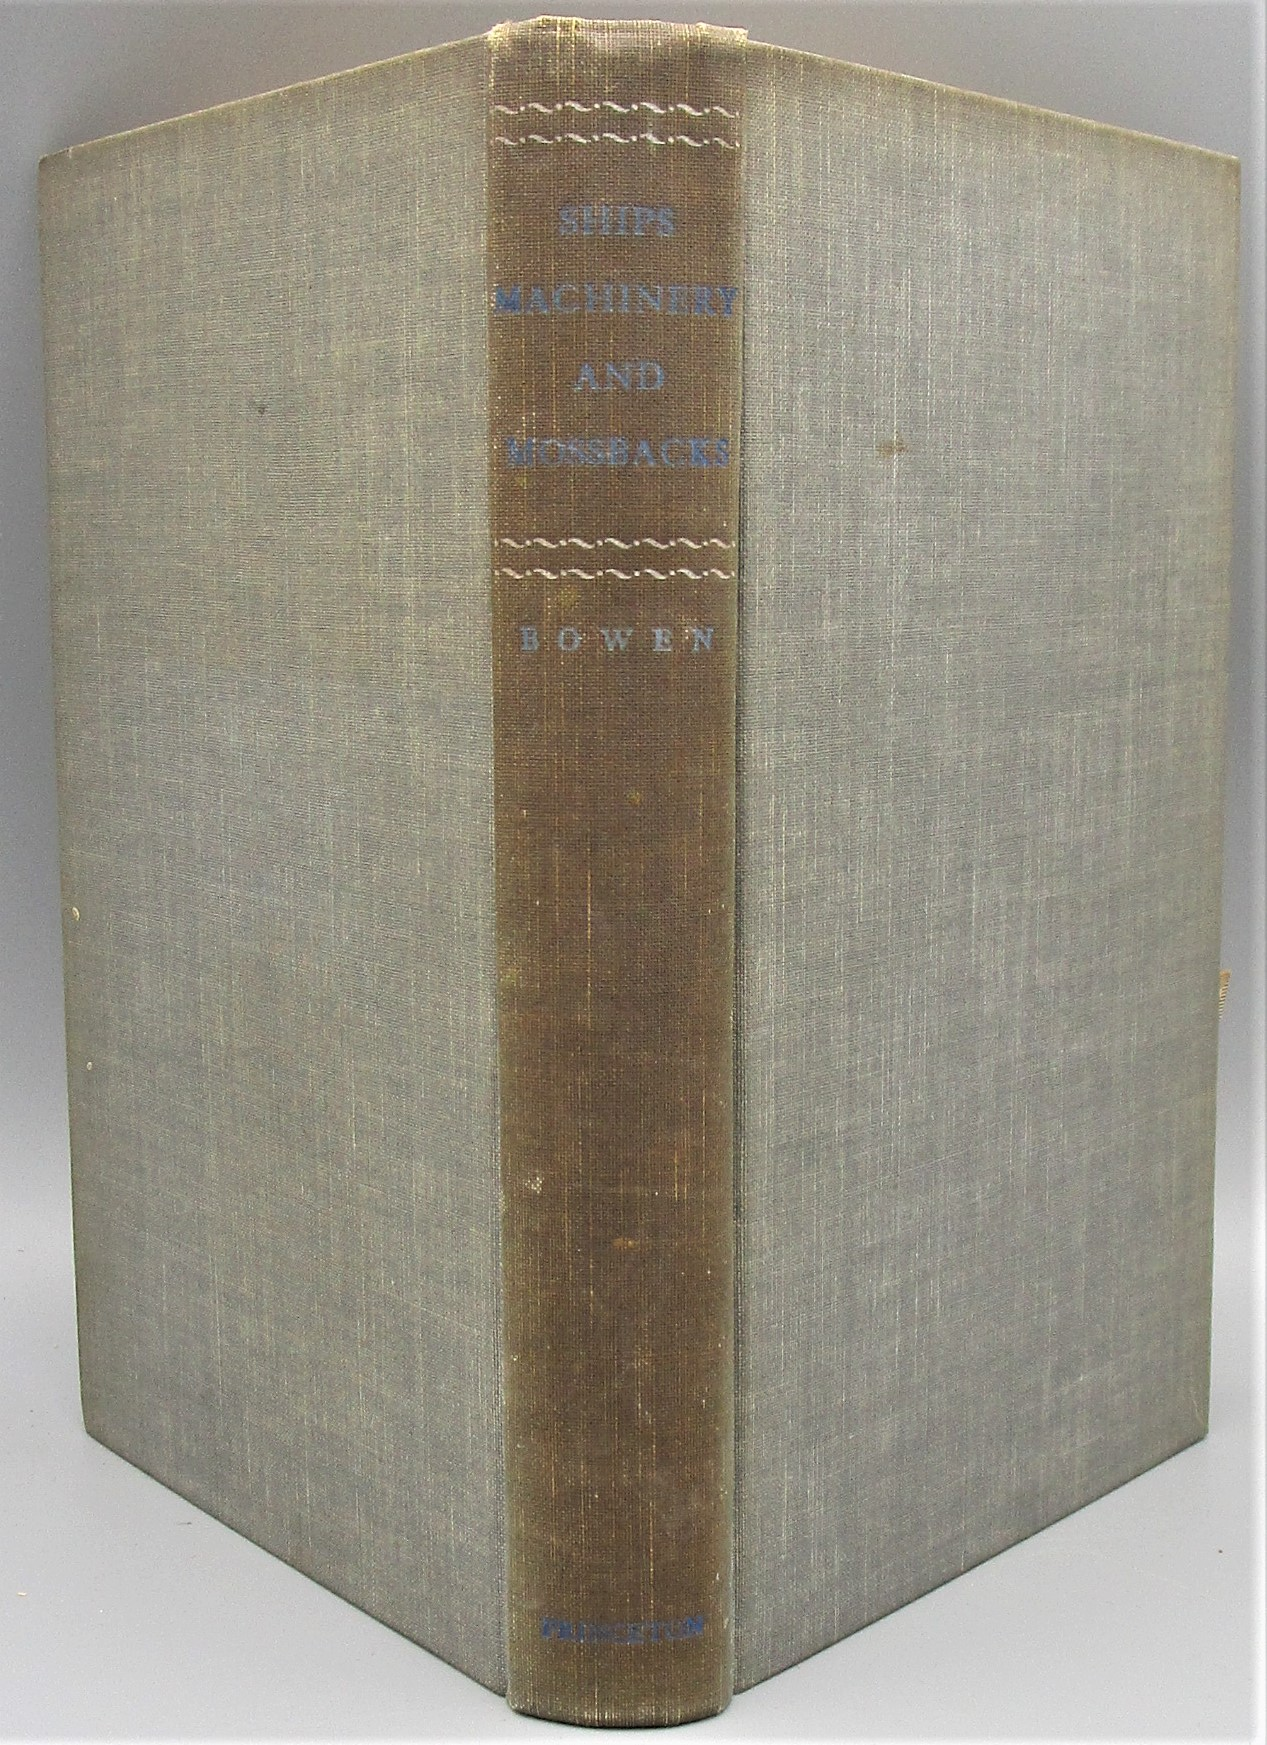 SHIPS, MACHINERY AND MOSSBACKS, by Harold G. Bowen - 1954 [1st Ed]